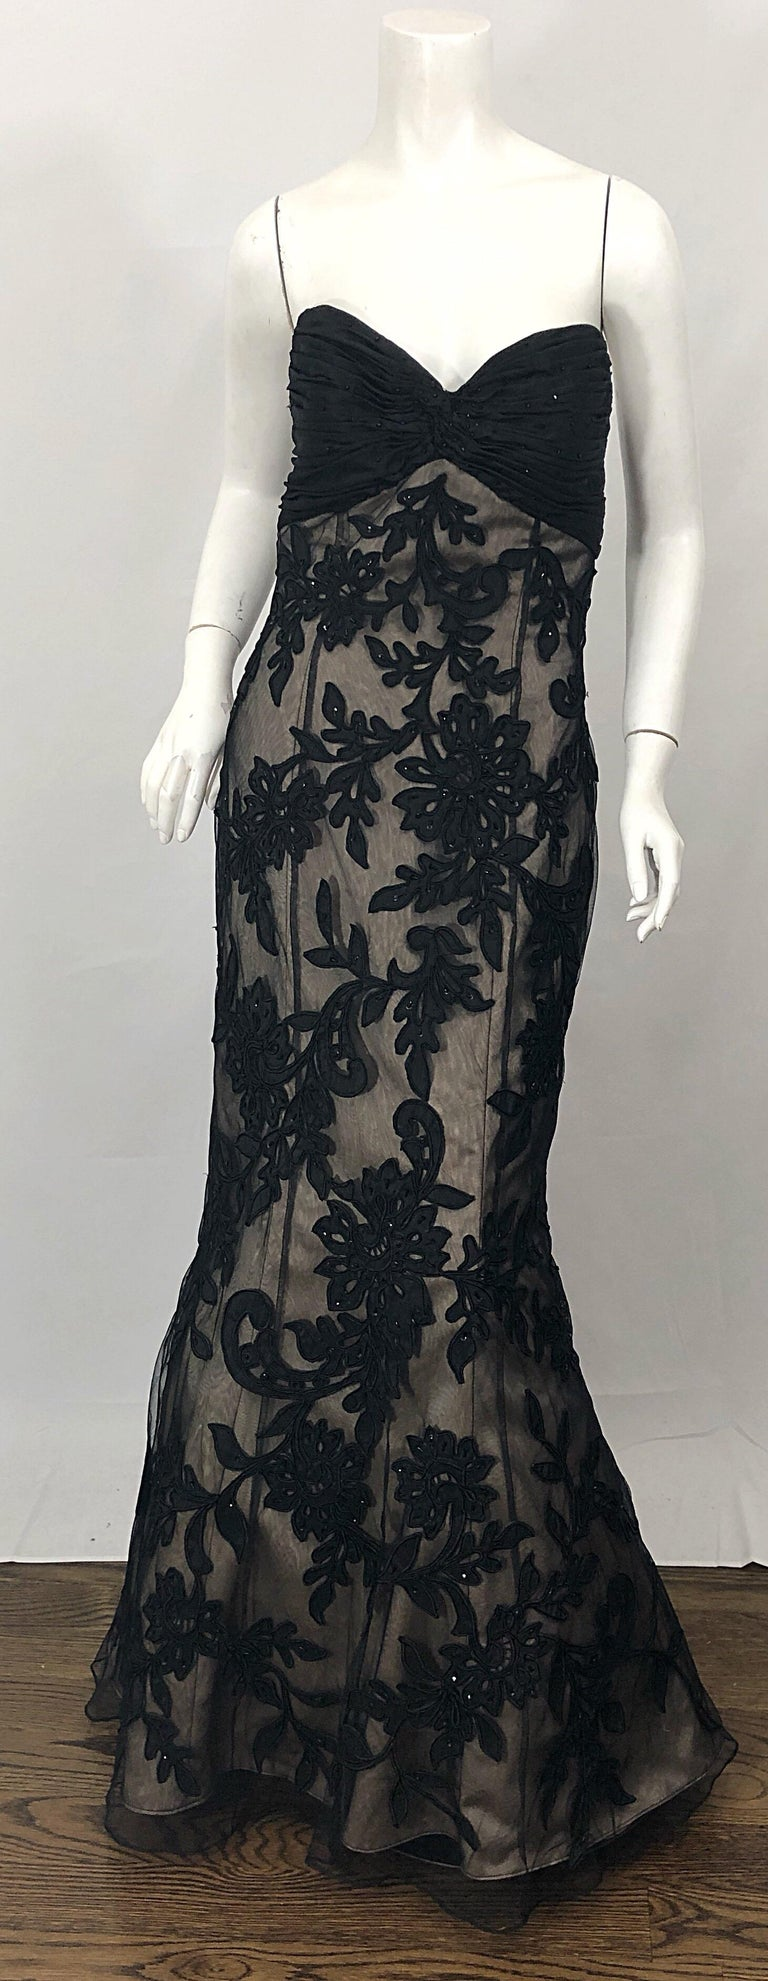 Sensational vintage BILL BLASS for SAKS 5th AVENUE black and nude silk beaded strapless mermaid gown! Features a bones ruched silk taffeta bodice. Black sheer embroidered and beaded silk lace overlay with nude silk underneath. Timeless flattering